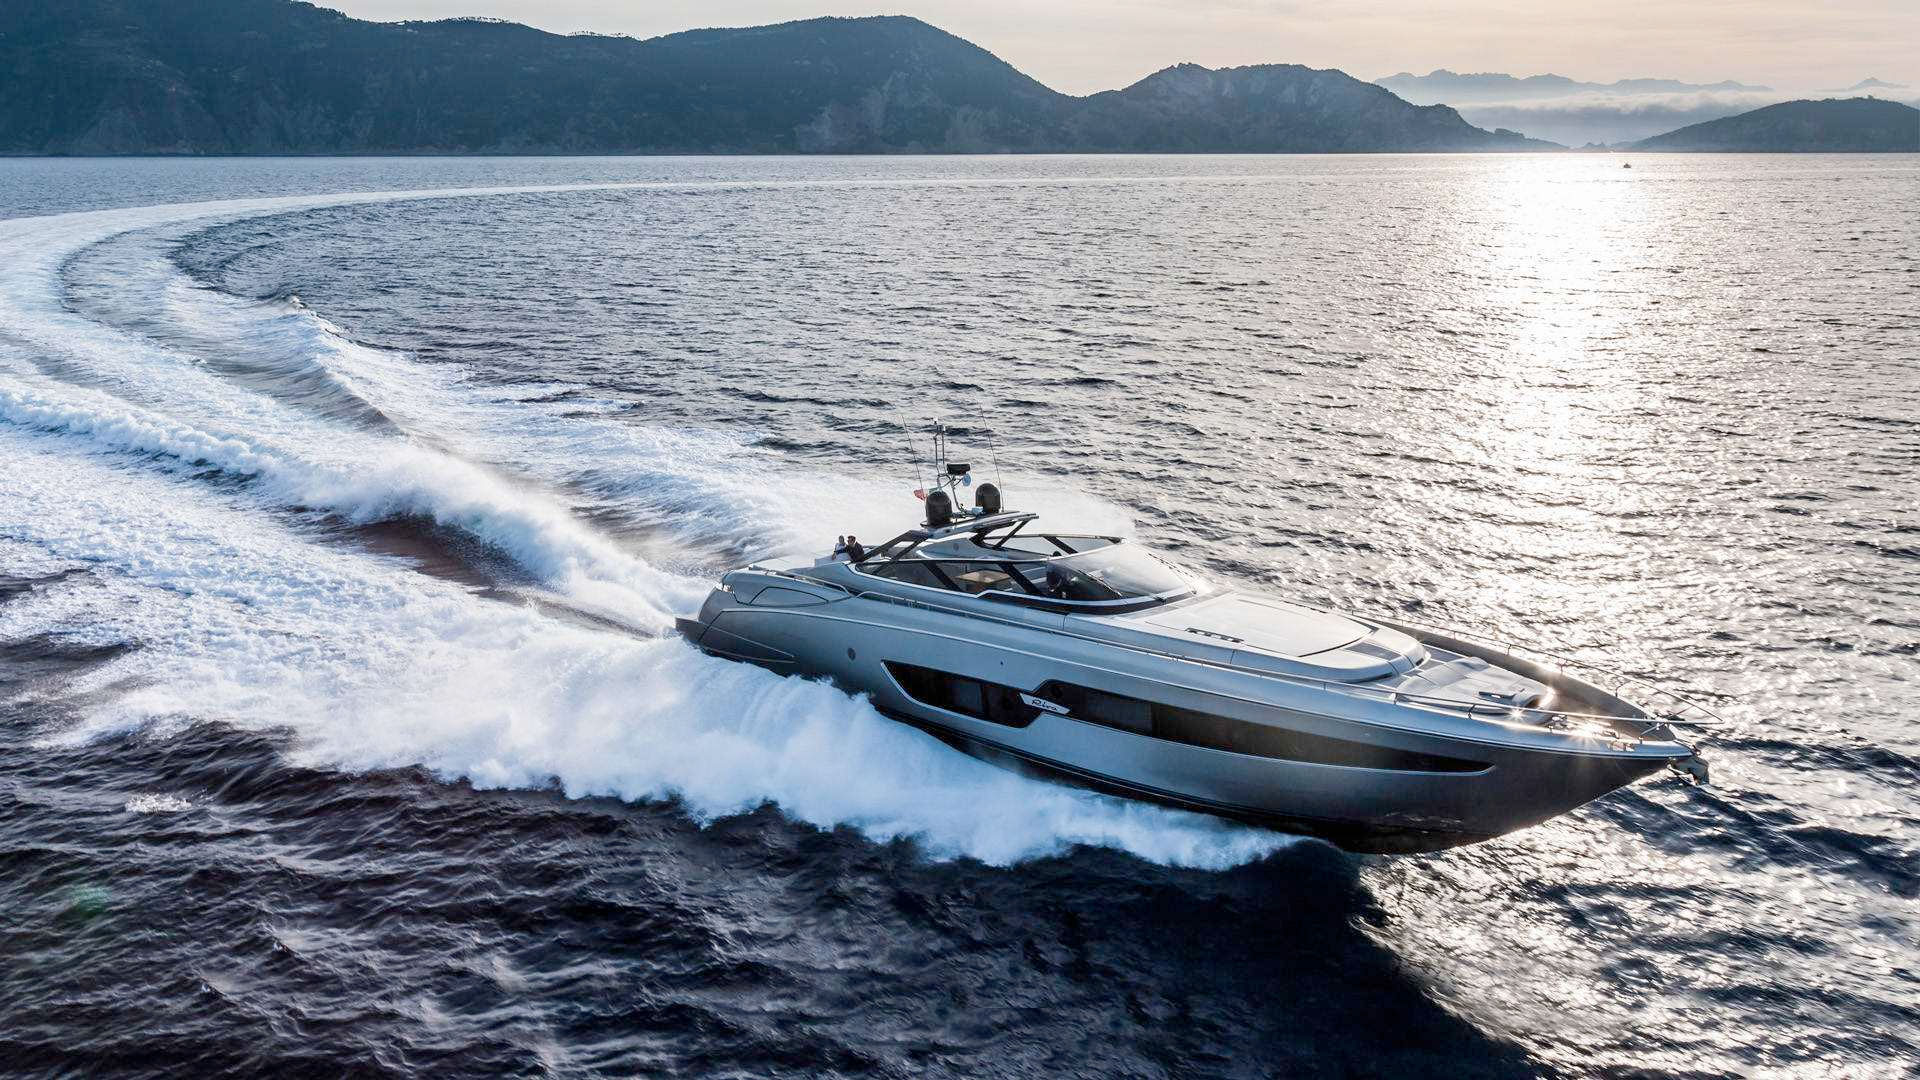 Go Top-Down in This Phenomenal Convertible Riva Yacht